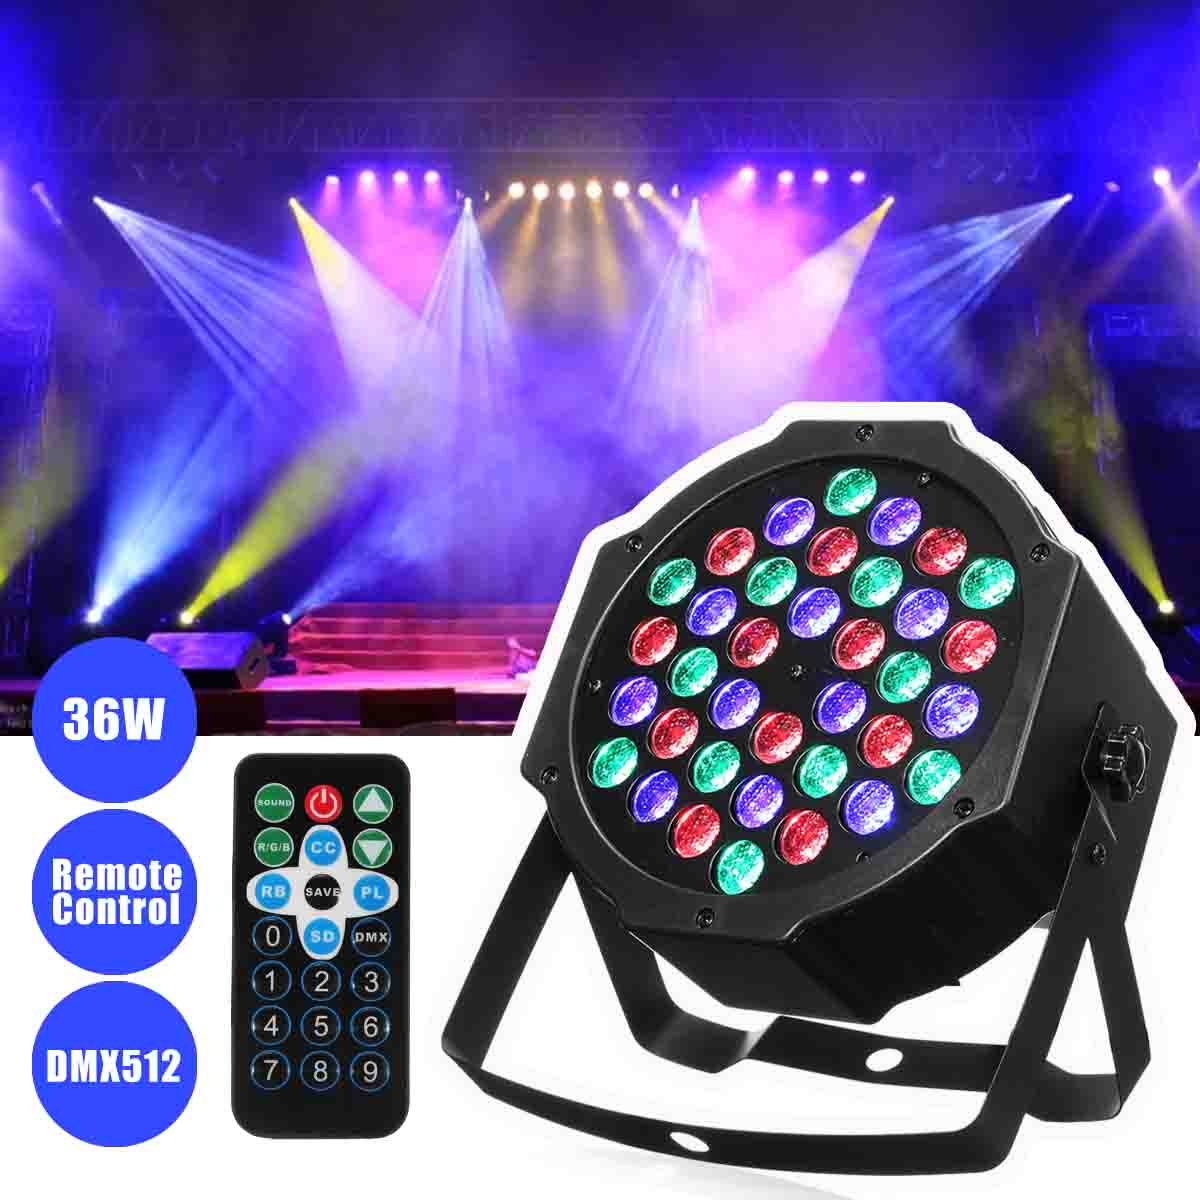 36W Par 36Pcs LED Stage Lighting Effect By IR Remote Control Party Disco DMX512 Light<br>